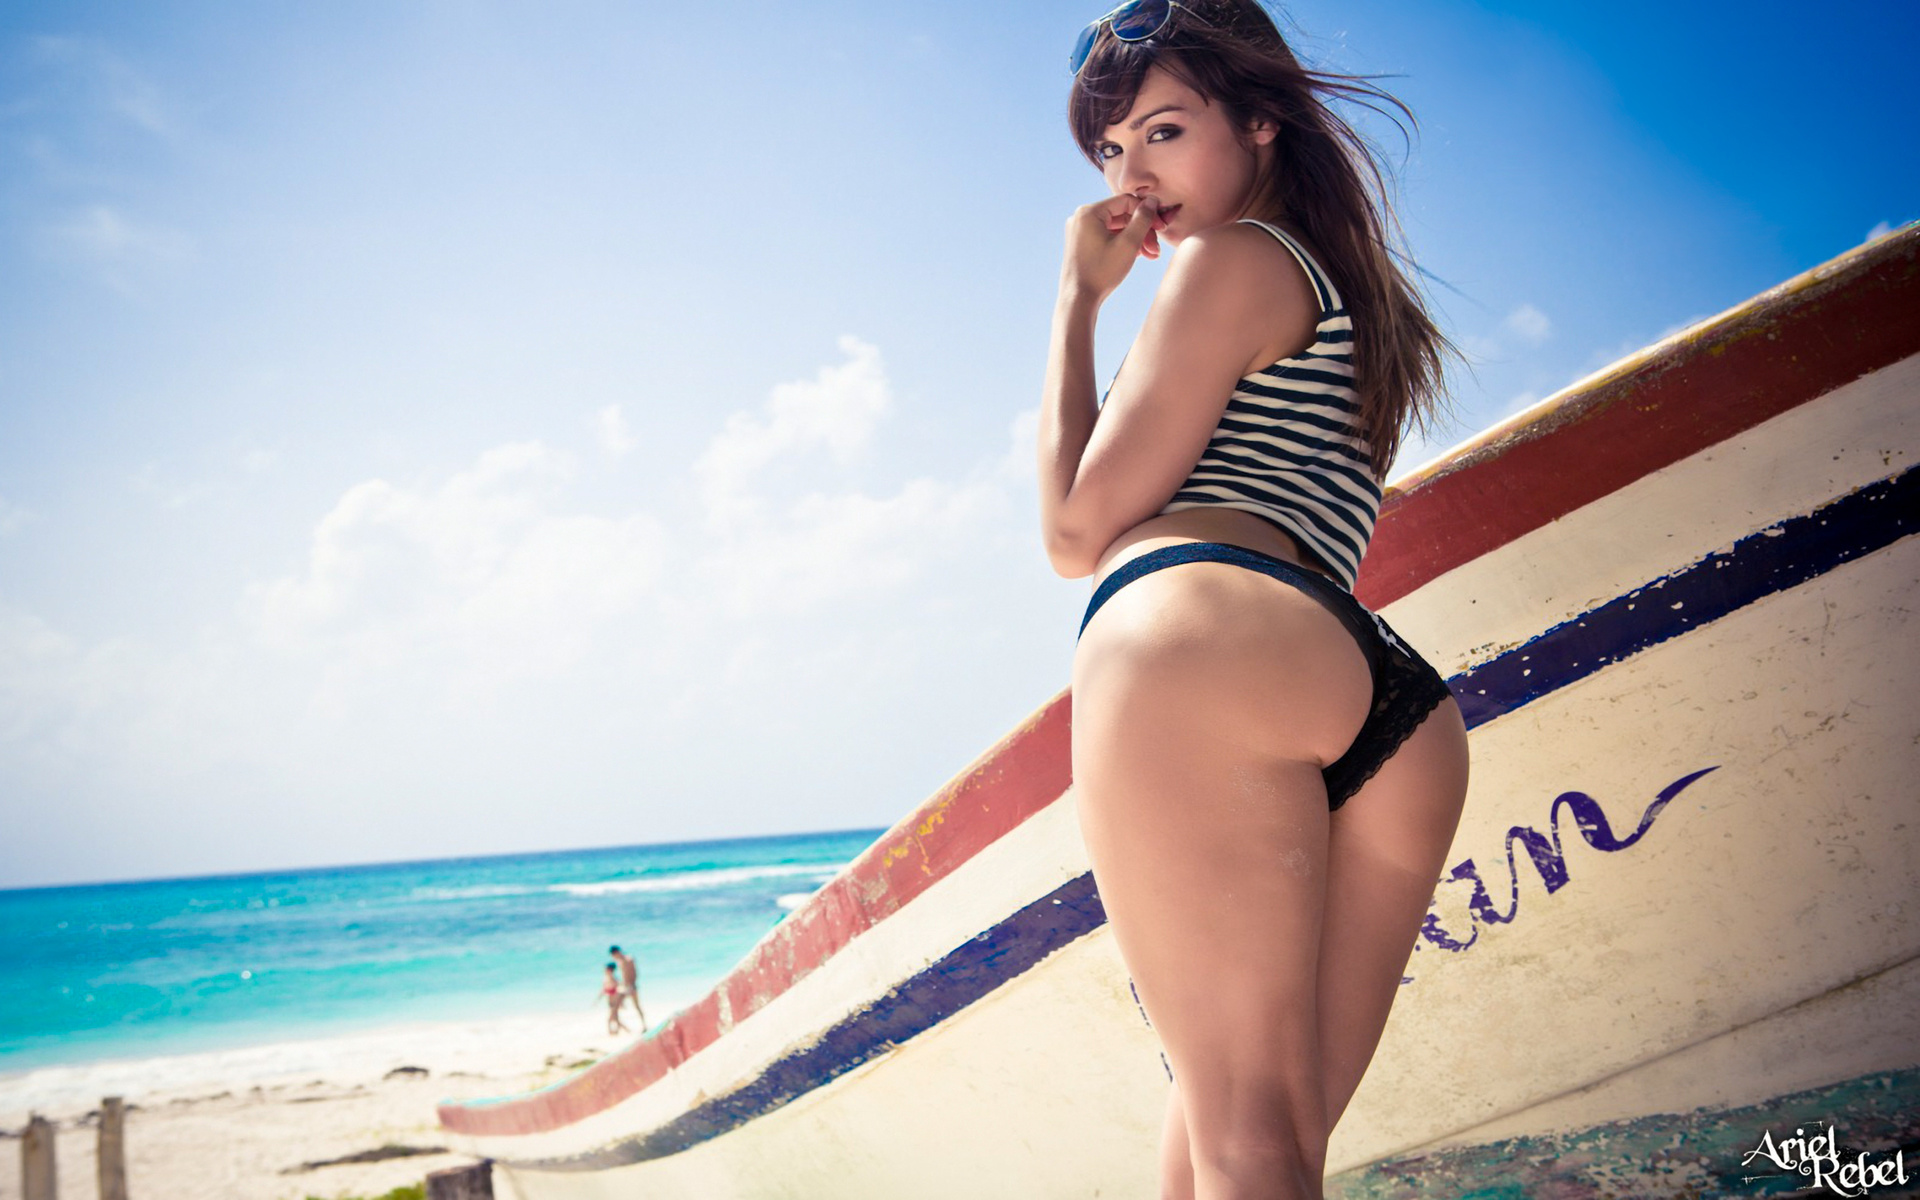 beach, water, perfect, beautiful, ass, boat, panties, Ariel rebel